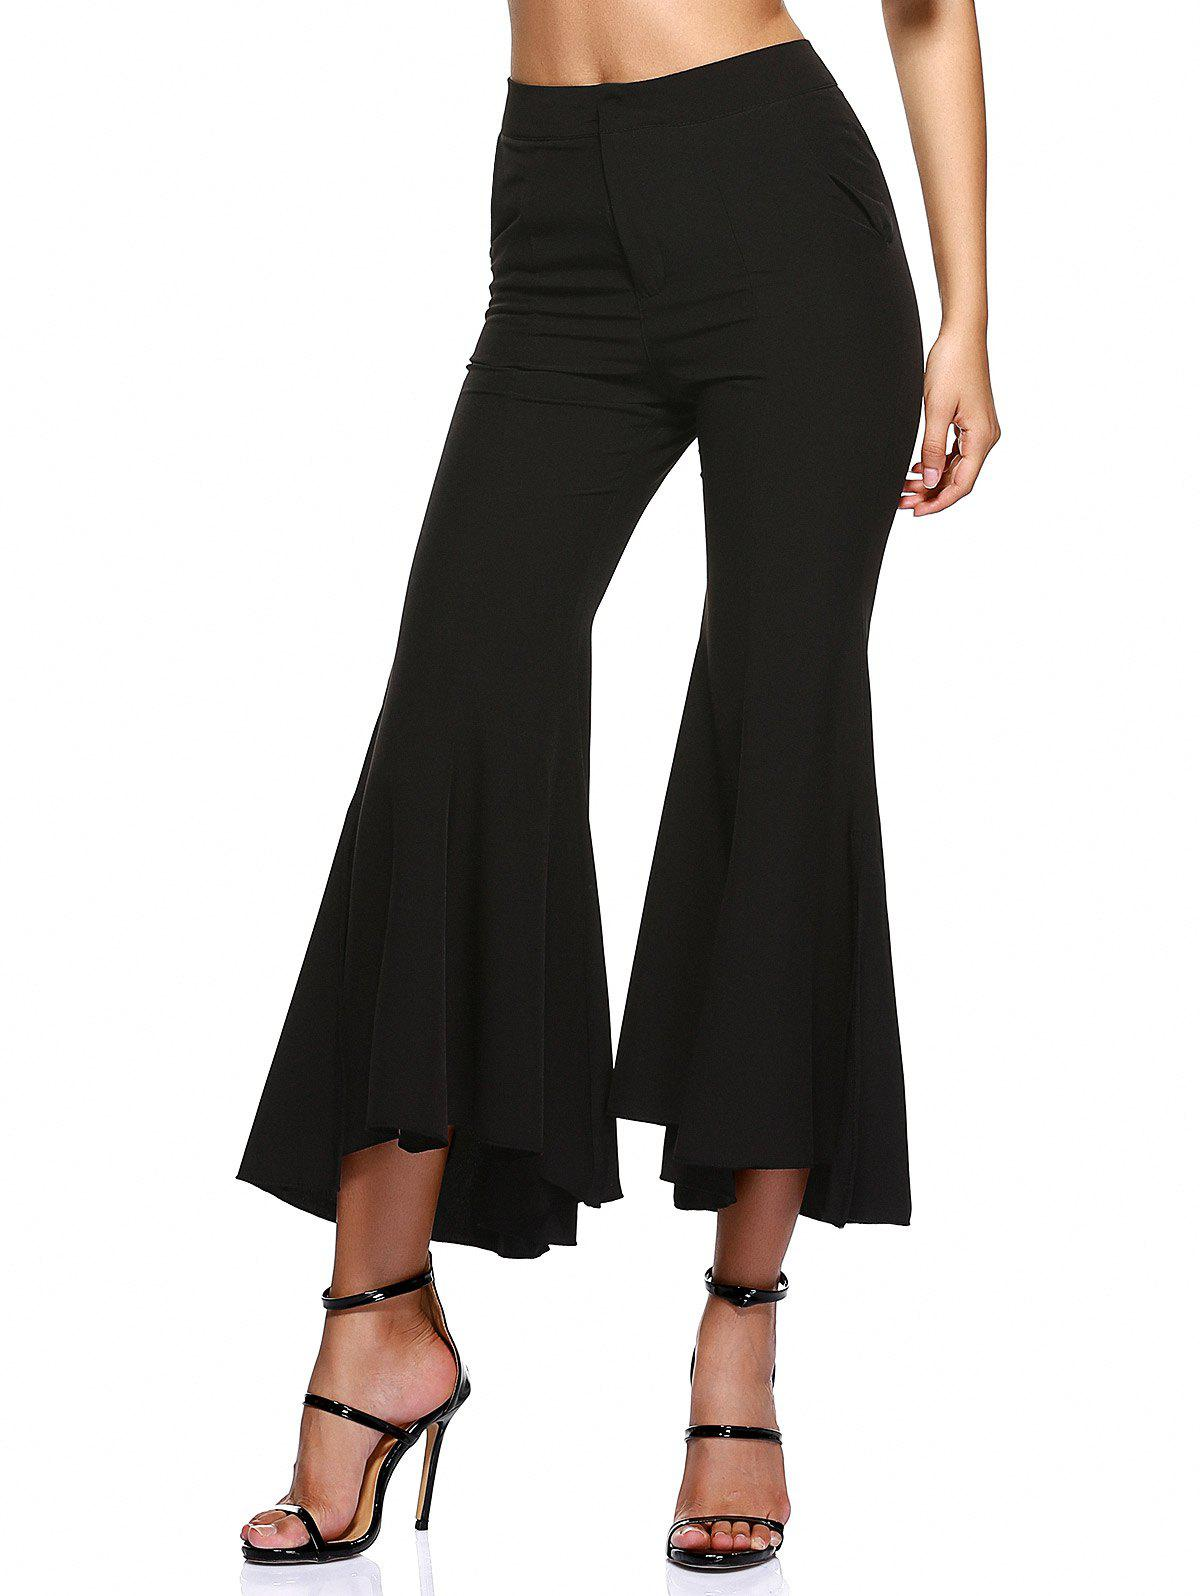 Stylish High Waist Bell-Bottom Side Slit Trousers - BLACK M